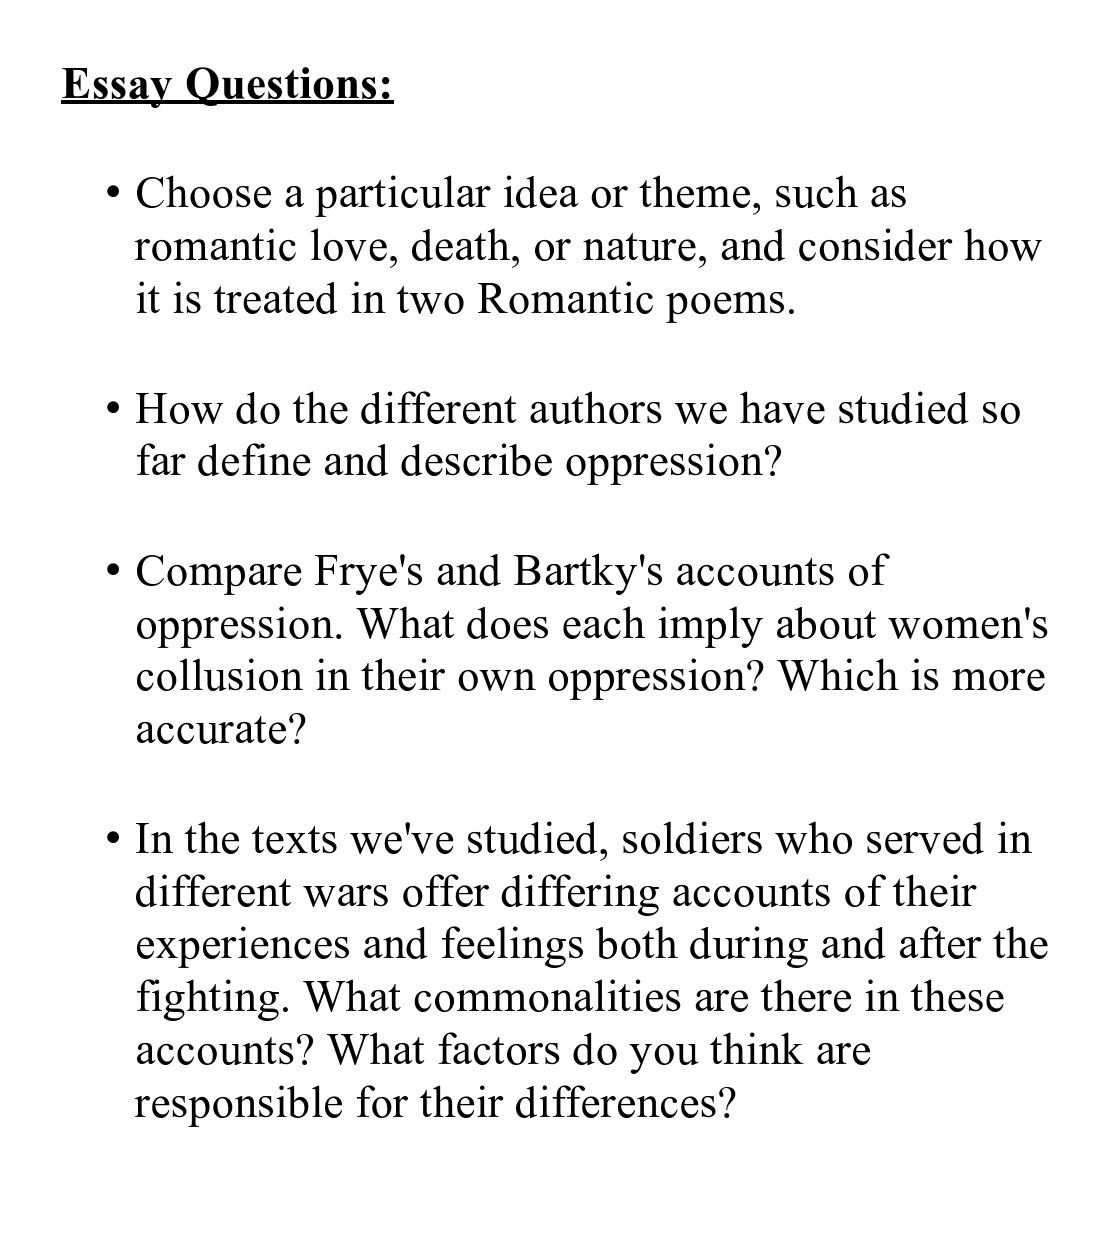 007 Essay Example Prompts Questions Best Narrative College Topics For Frankenstein By Mary Shelley Writing High School Economics Full